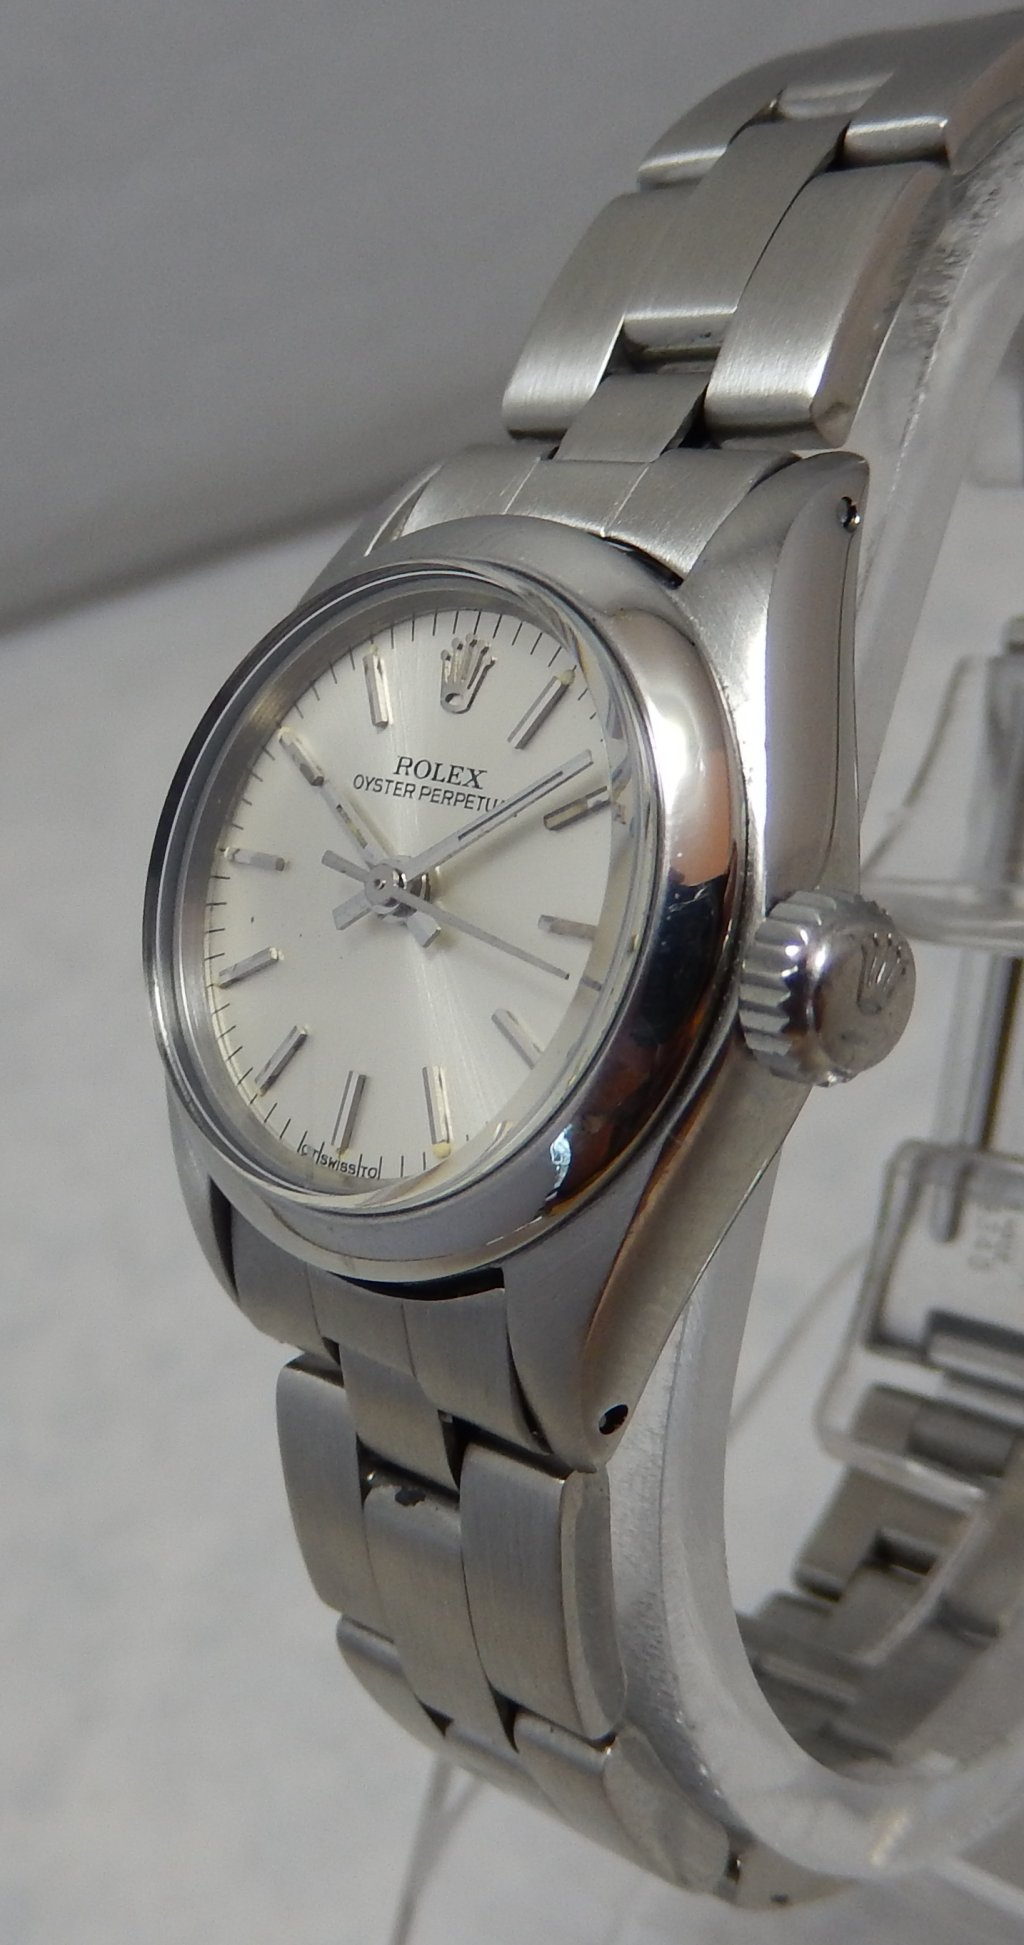 ecf841e82b5 Rolex Oyster Perpetual Ladies Watch NICE ALL GENUINE Heavy Oyster ...